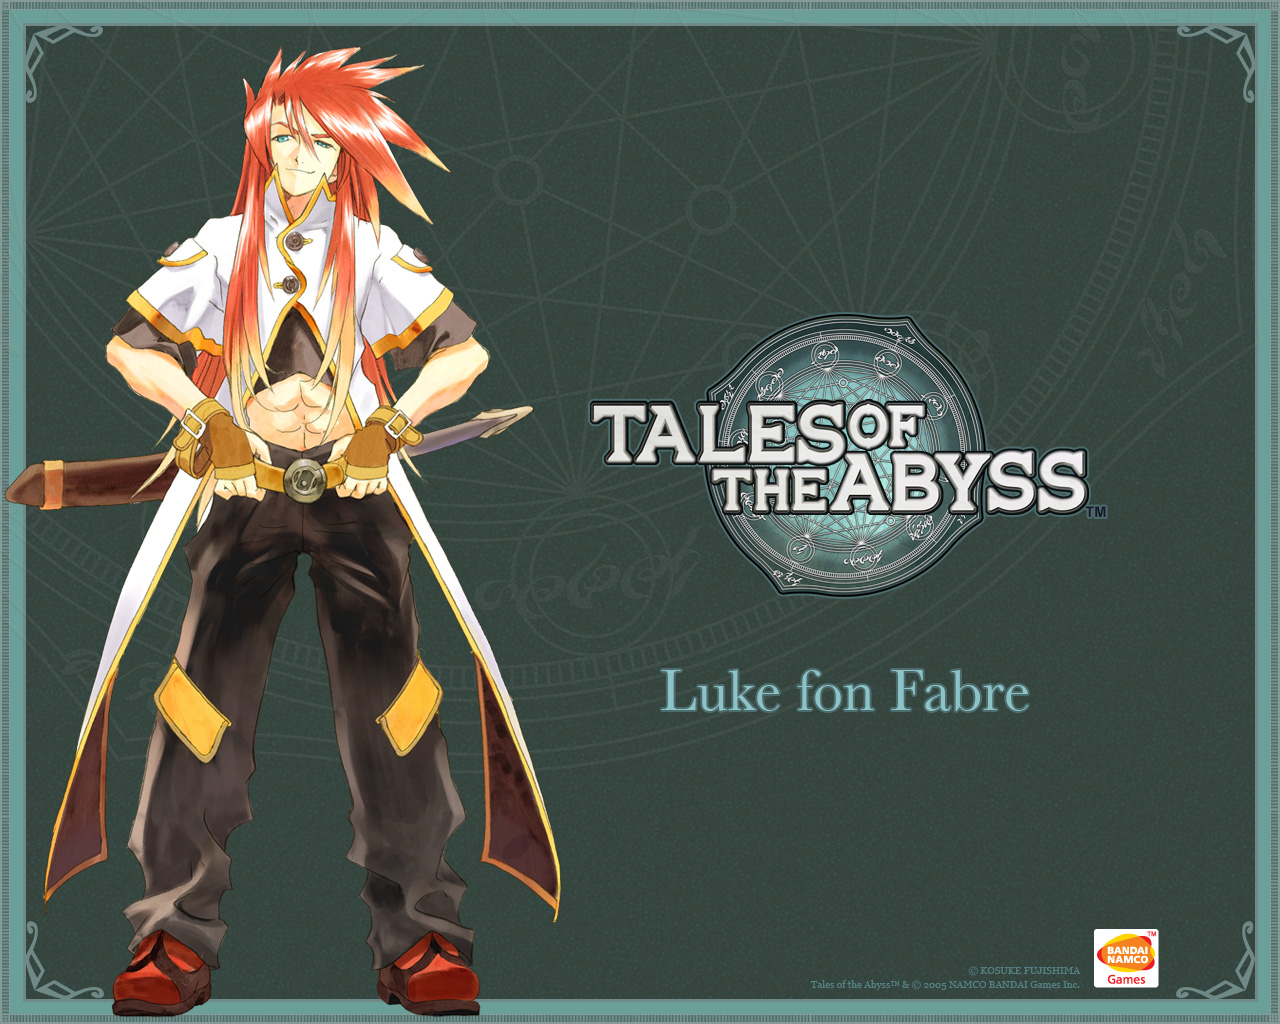 Luke  Tales of the Abyss Wallpaper Gallery   Best Game Wallpapers 1280x1024